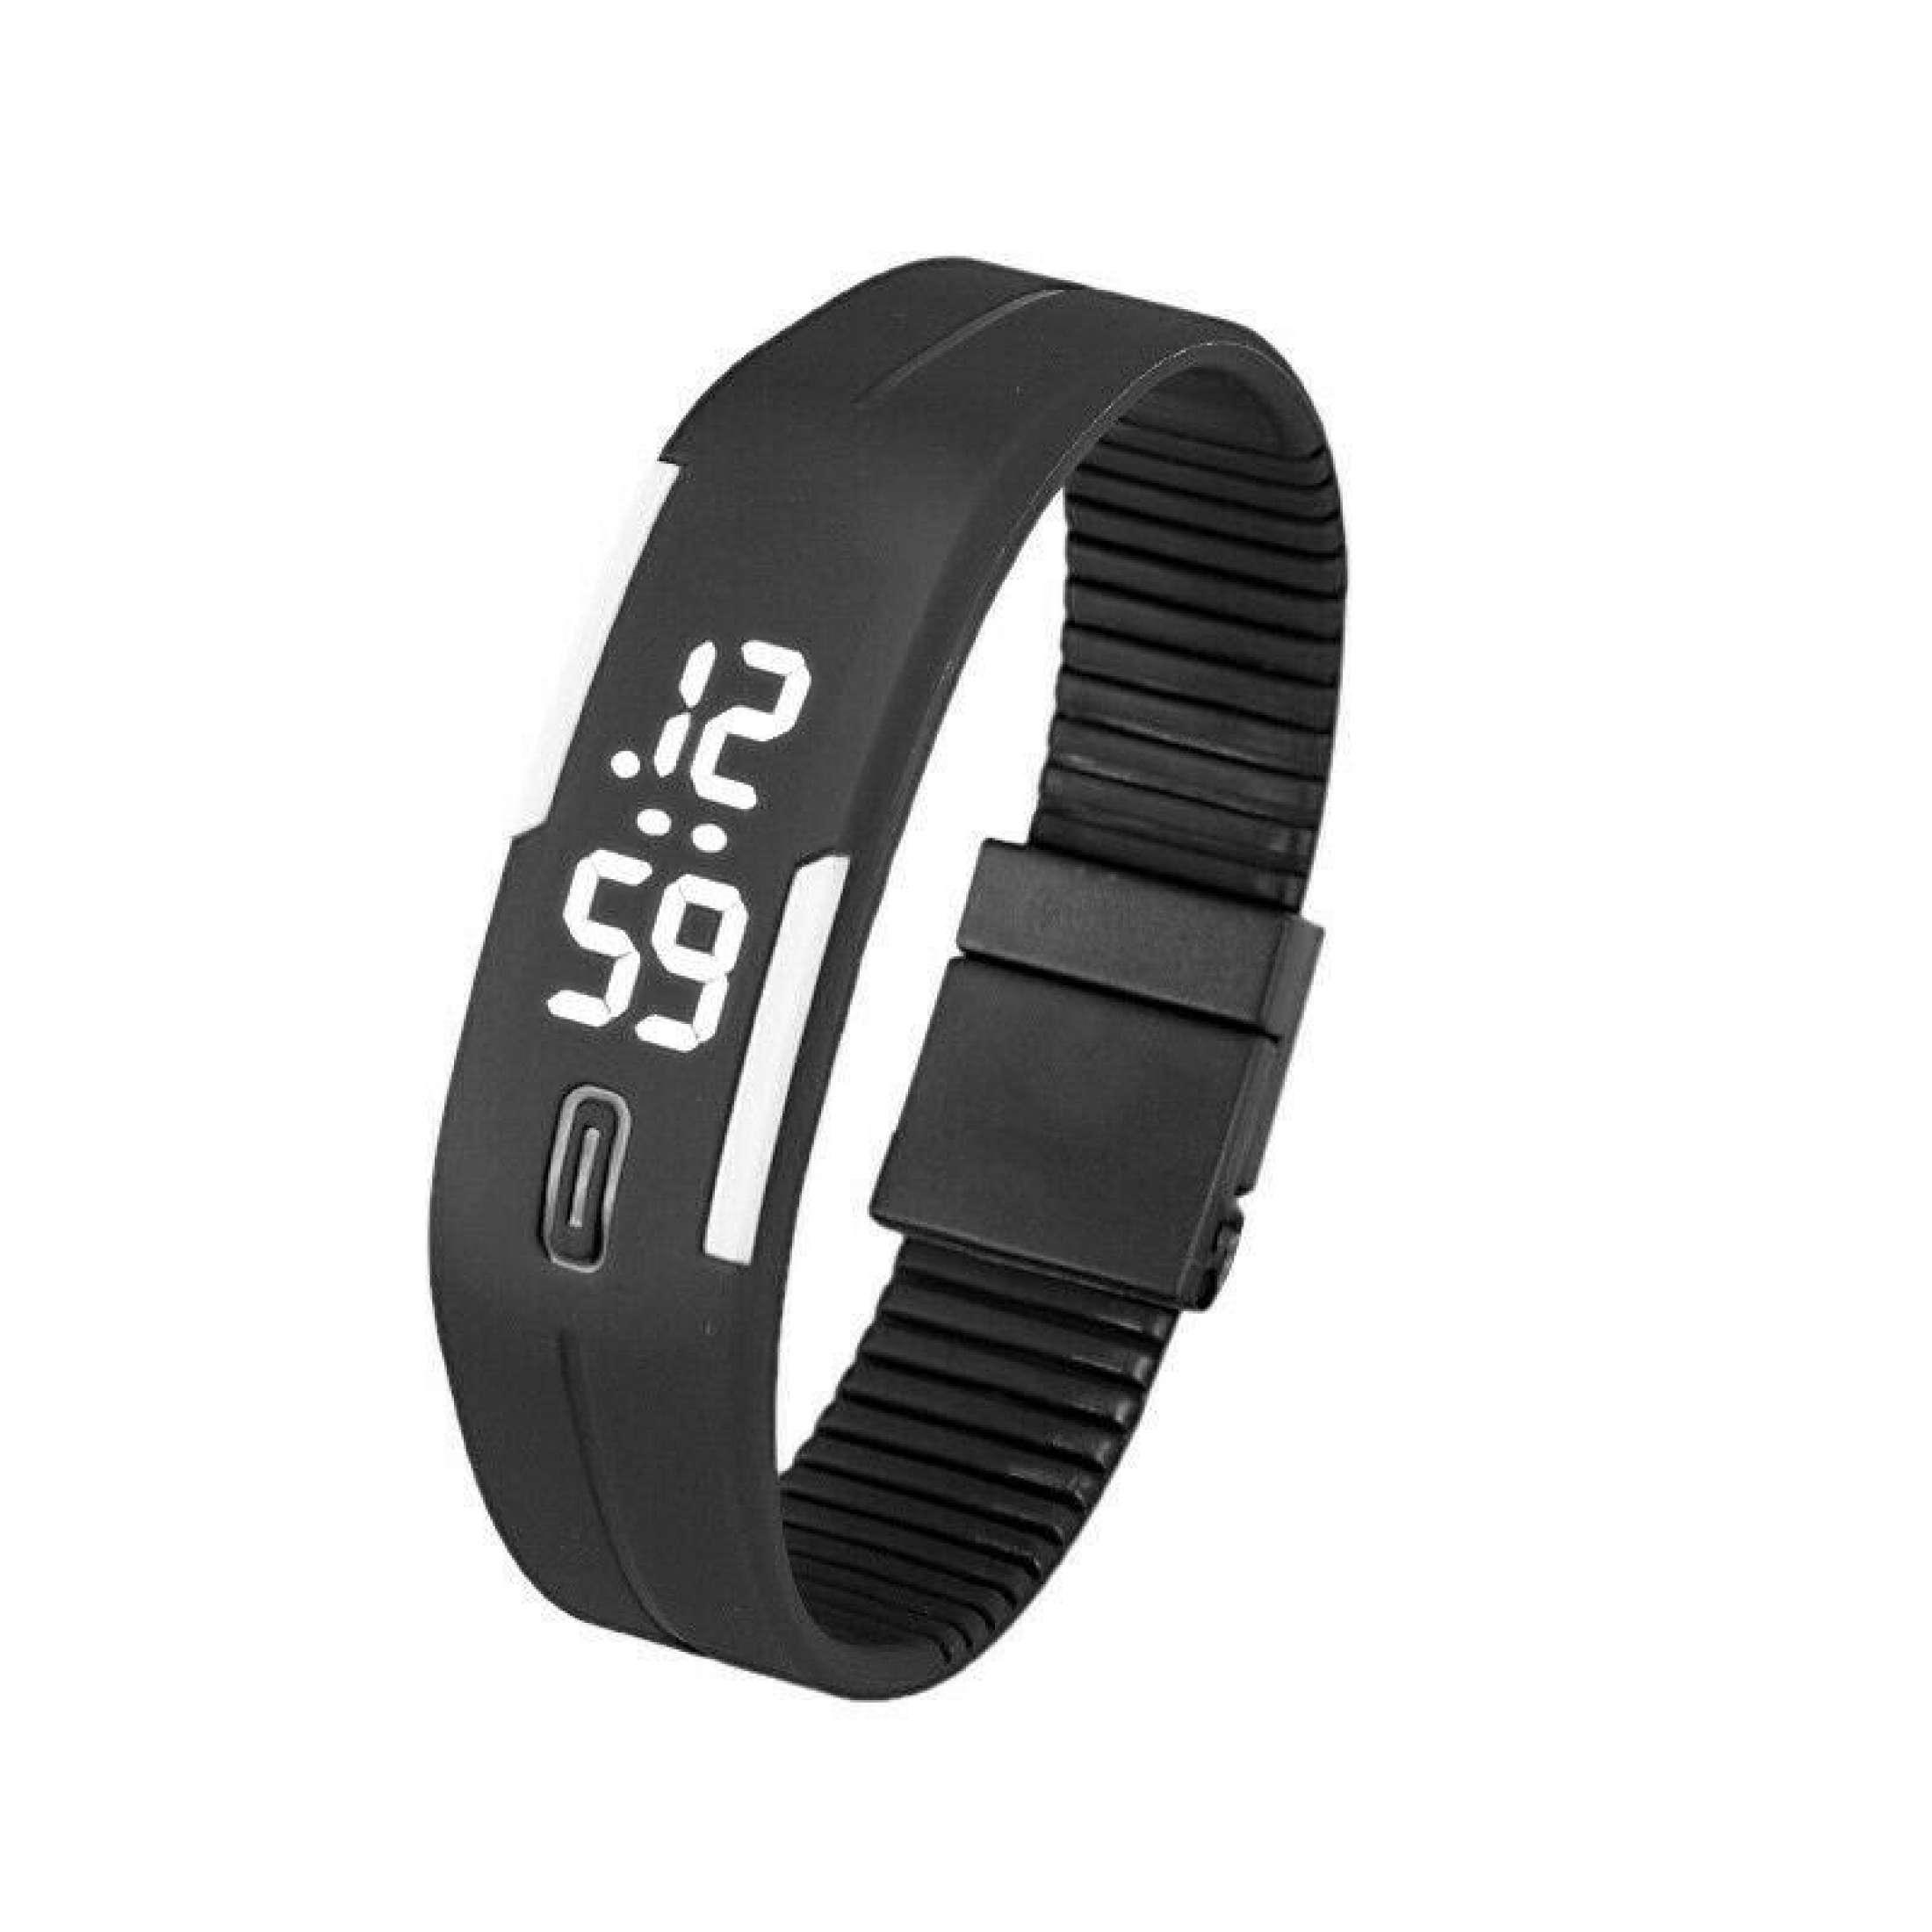 LED Digital Wrist watches Birthday Party Gifts for kids for boys and Girls Multicolor LED Digital Bands By Markhor Shopping